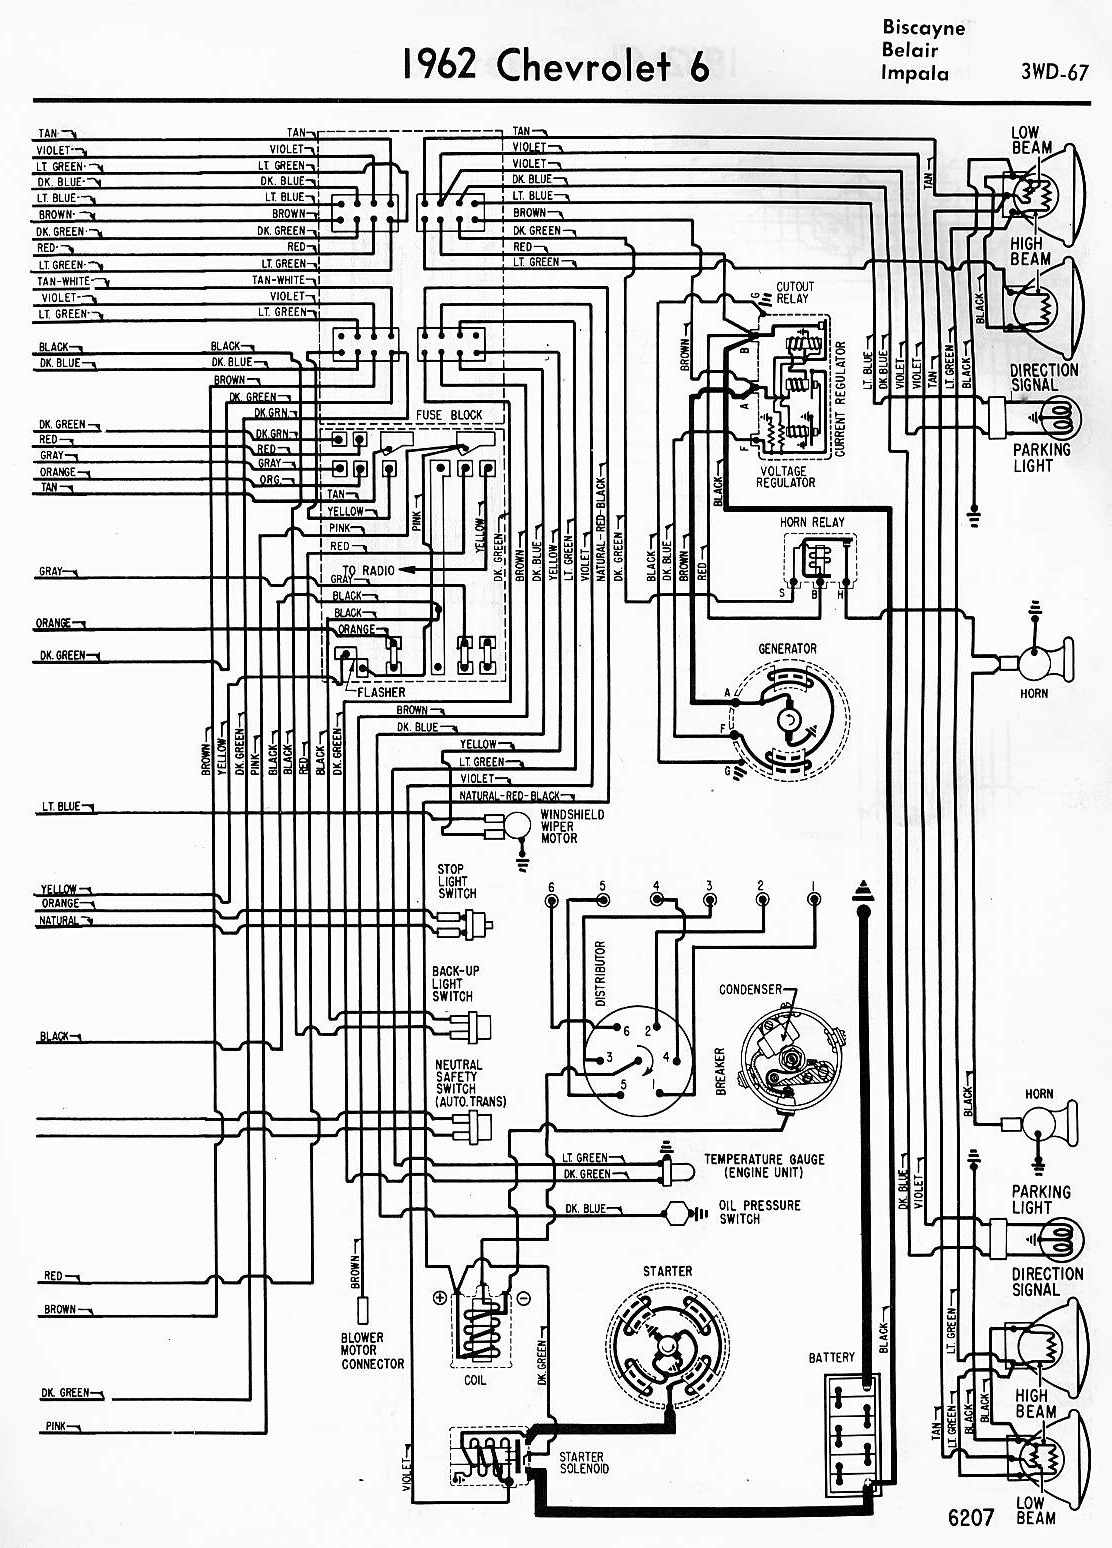 Electrical+Wiring+Diagram+Of+1964+Chevrolet+6 electrical wiring diagram of 1962 chevrolet 6 all about wiring 2011 impala wiring diagram at mr168.co